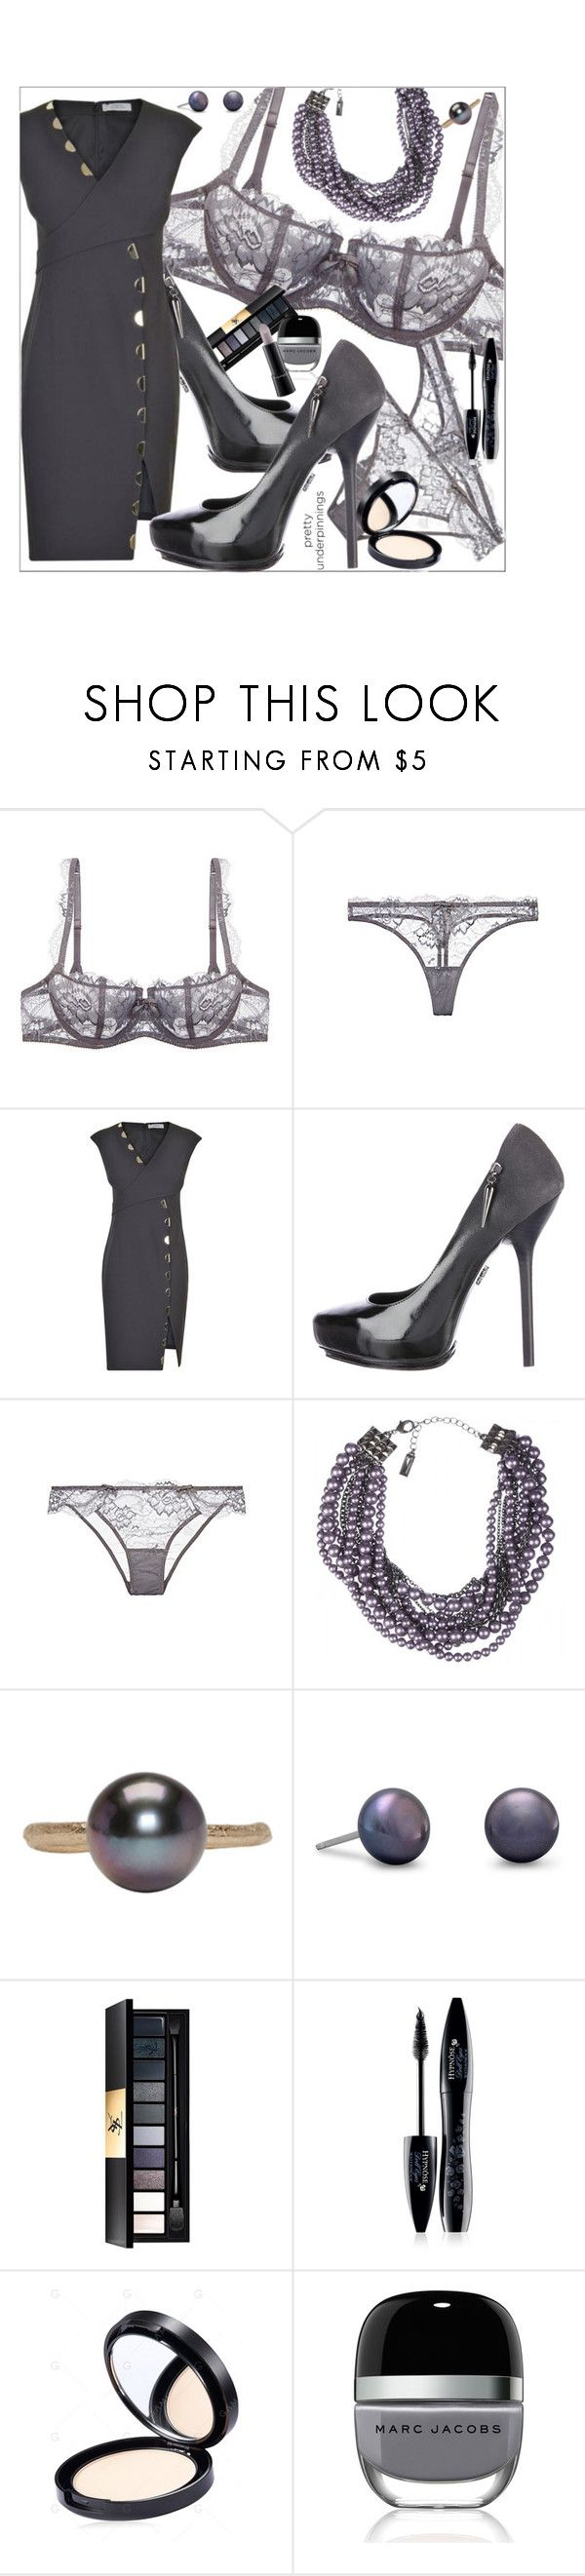 """Pretty Underpinnings"" by marionmeyer ❤ liked on Polyvore featuring Versace, Rock & Republic, Lia Sophia, Pearls Before Swine, Yves Saint Laurent, Lancôme, Marc Jacobs, MAC Cosmetics and prettyunderpinnings"